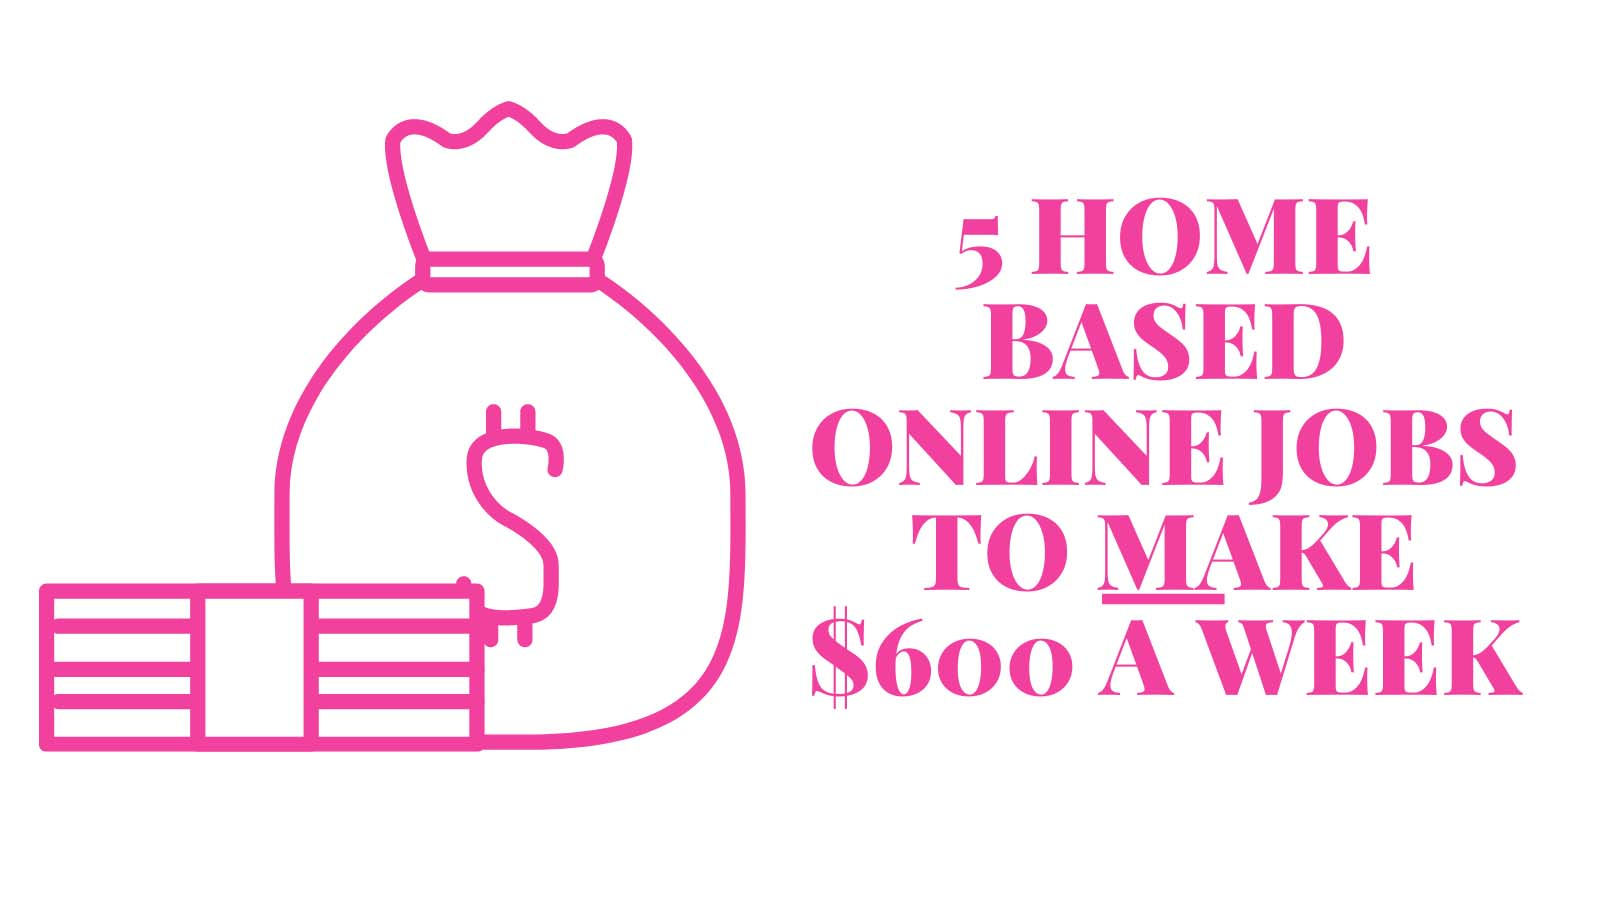 5 Home-Based Online Jobs To Make $600 A Week